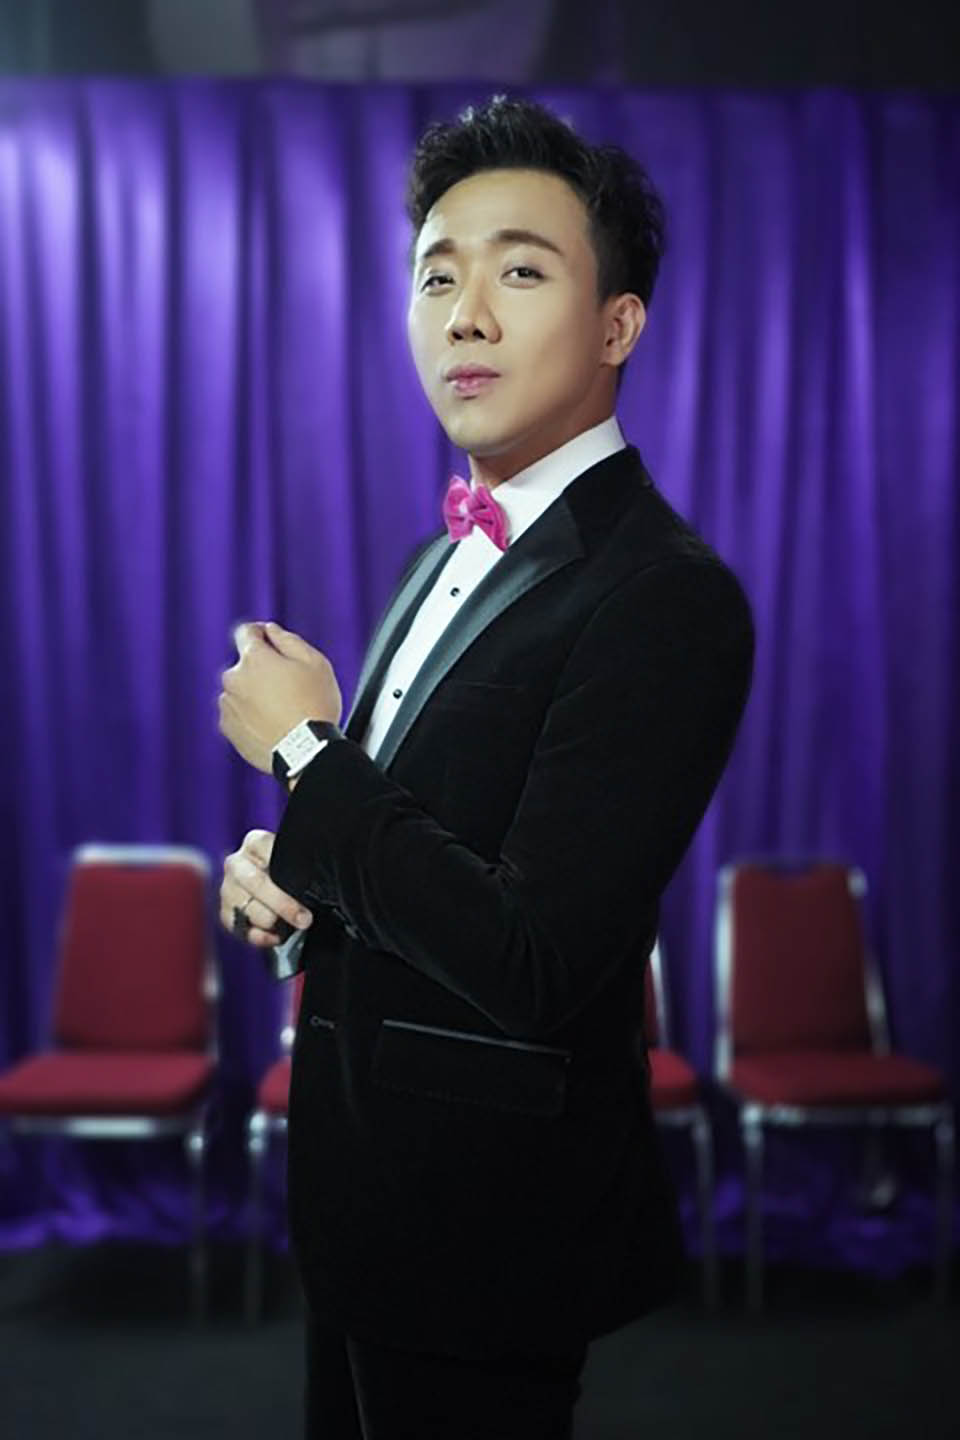 tran thanh dien vest 4.000 usd, deo dong ho 1,2 ty sang indonesia lam mc hinh anh 2